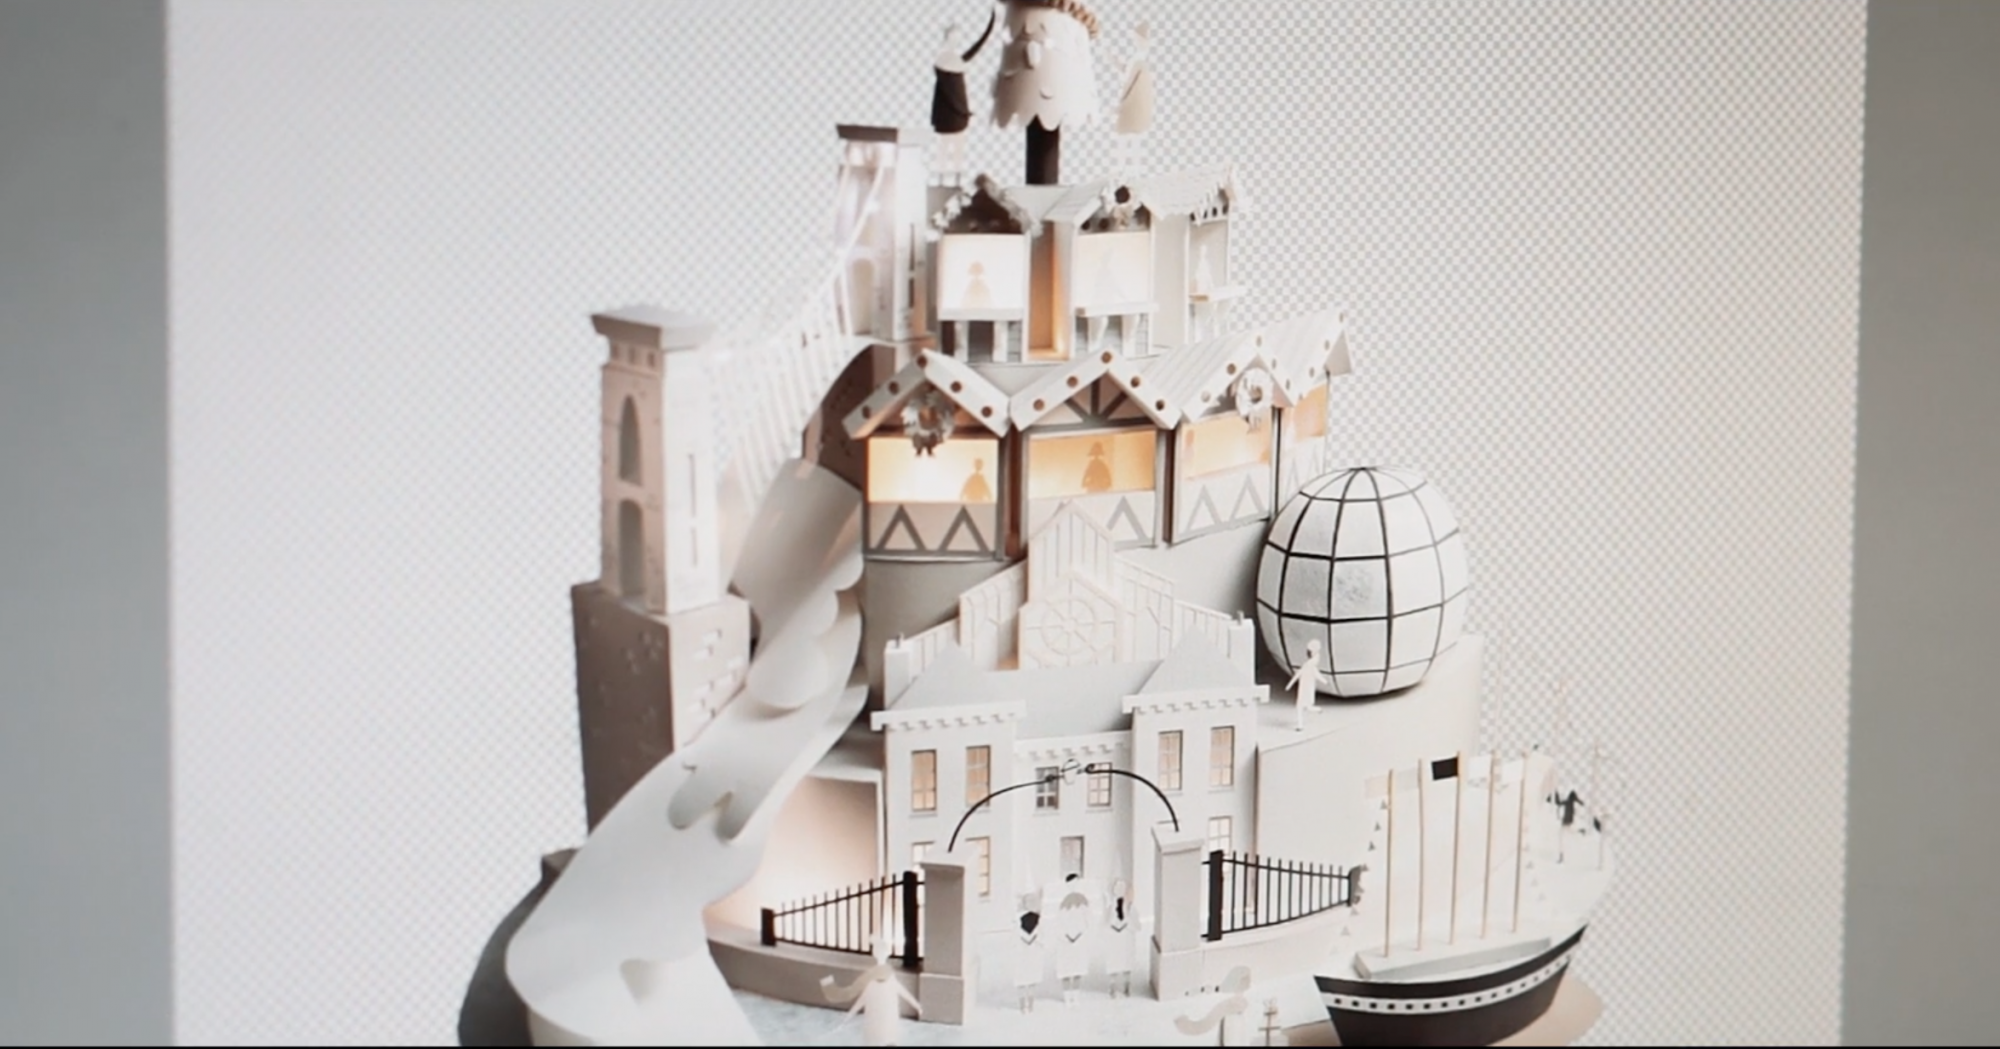 Sam Pierpoint Creates Magical Campaign Promoting Christmas in Bristol Crafted in Paper